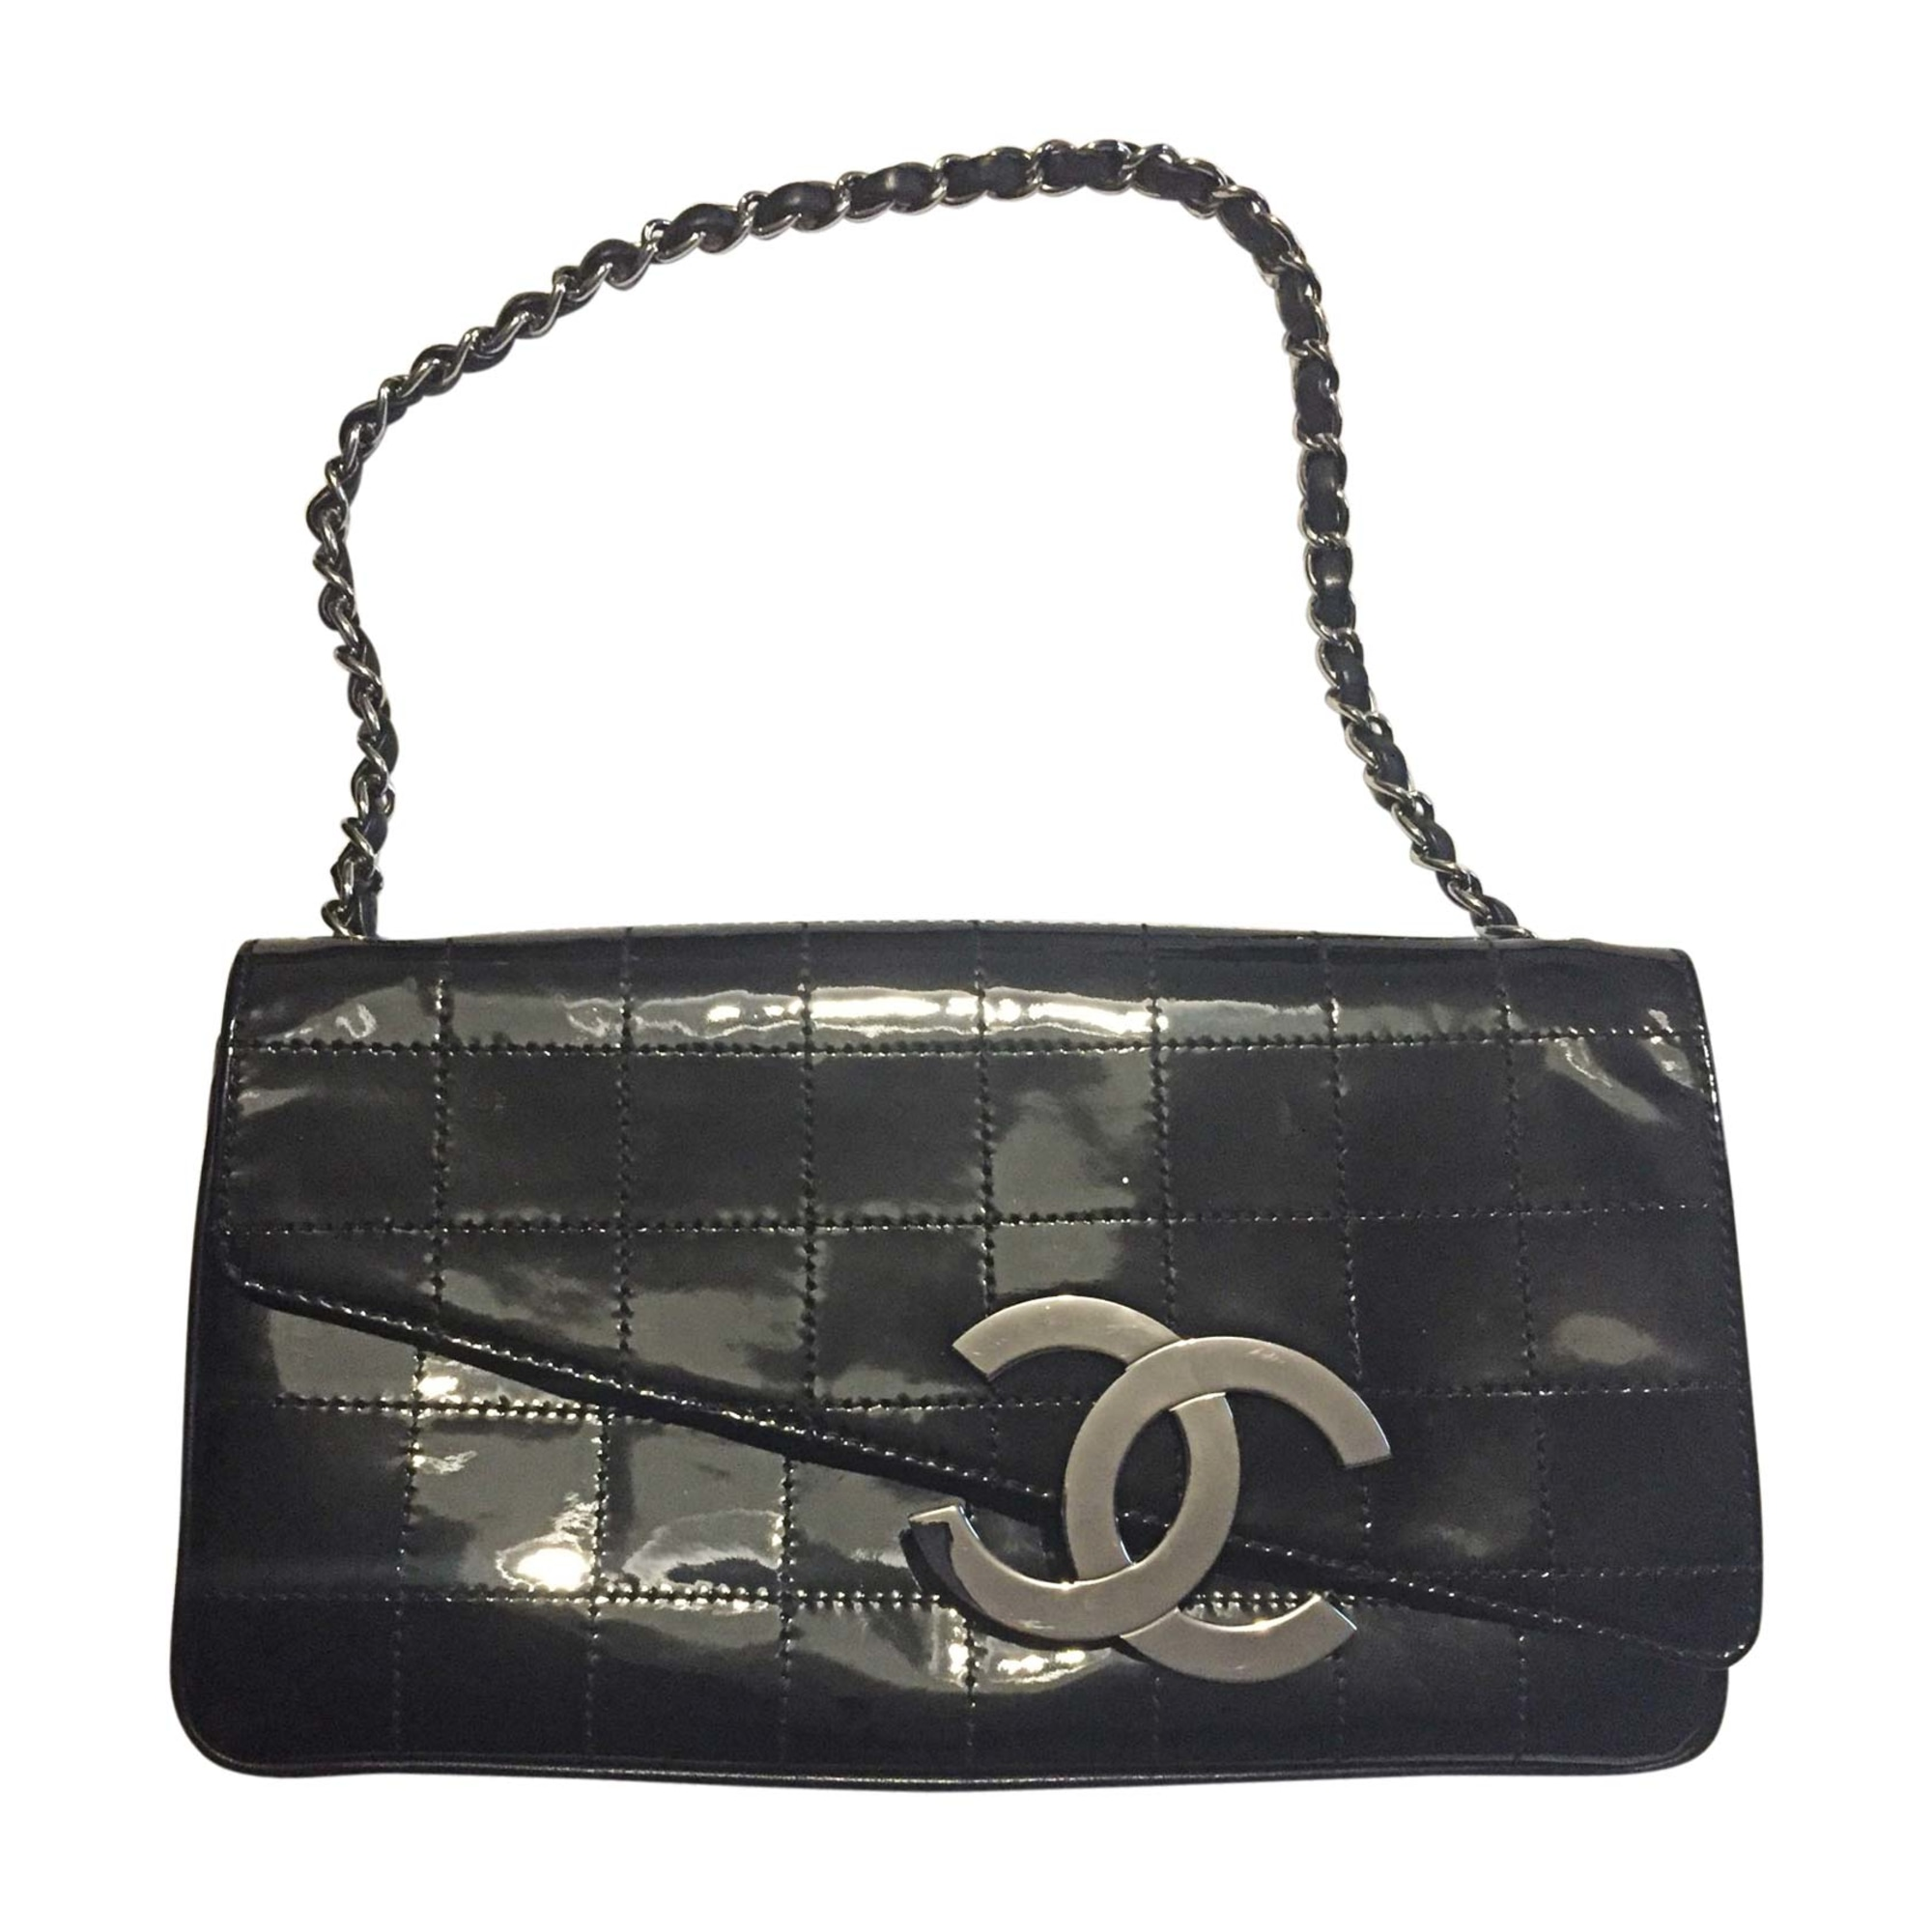 handtasche leder chanel schwarz vendu par simeon 0107 7138537. Black Bedroom Furniture Sets. Home Design Ideas